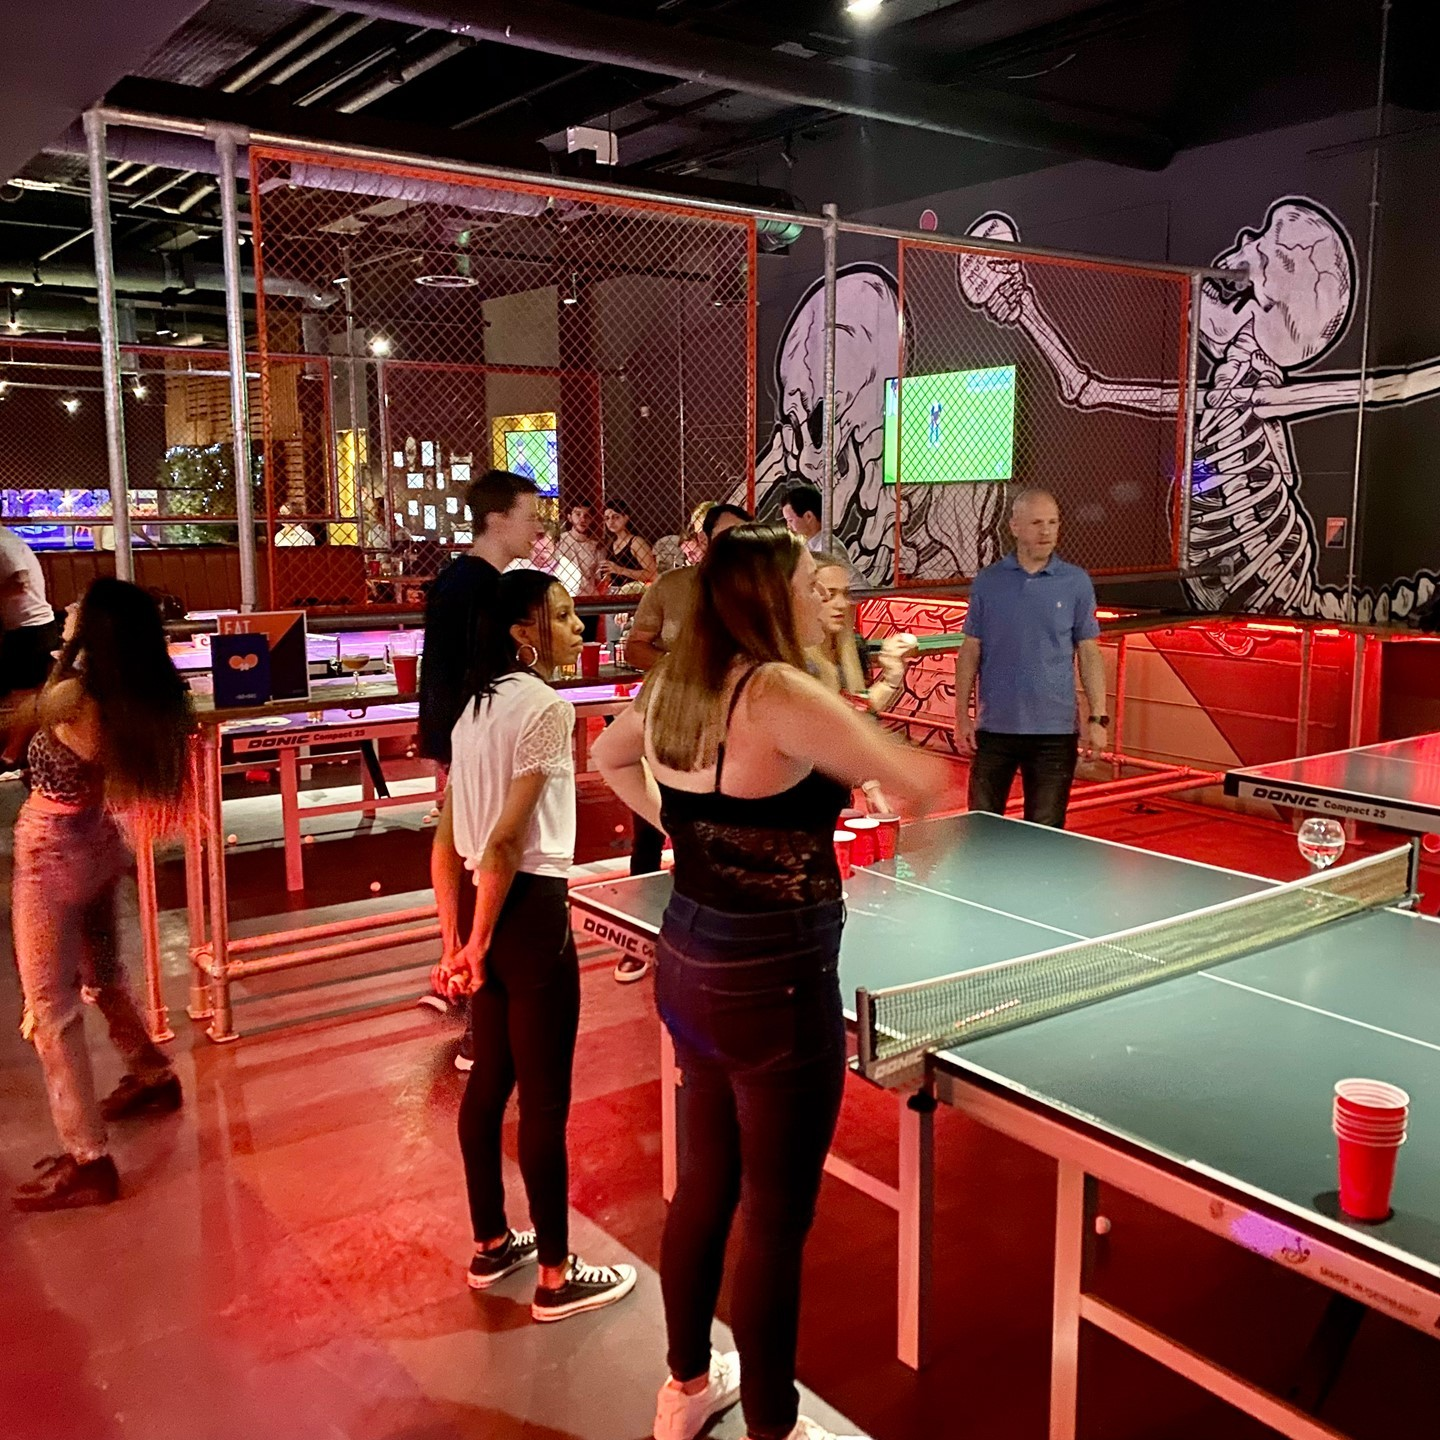 DING DONG PING PONGGGG!!!!😏🏓🏓🏓 Things are heating up at Bat and ball with our most popular games!!!🔥🔥🔥 . . Come down and play some beer pong with all your friends, with this competitive season you're bound to to hop at this amazing experience!!! . . Following the LINK IN OUR BIO!!! book a chance to absolutely destroy one of your friends!!! #pingpongchallenge #pingpong #pingpongballs #pingpongchanp #pingpongbar #pingpongpizza #pingponggirl #pingponger #pingpong4purpose #pingpongbat #pingpongking #beerpong #beerpongtable #beerpong🍻 #beerpongchamps #beerpongcups #beerpongnight #stratforwestfield #stratfordwestfieldcity#stratfordwestfieldmall #nightoutwithfriends #things #thingstodolondon #cocktails #cocktailsofinstagram #cocktailsporn #cocktailswithfriends #coctailsnight